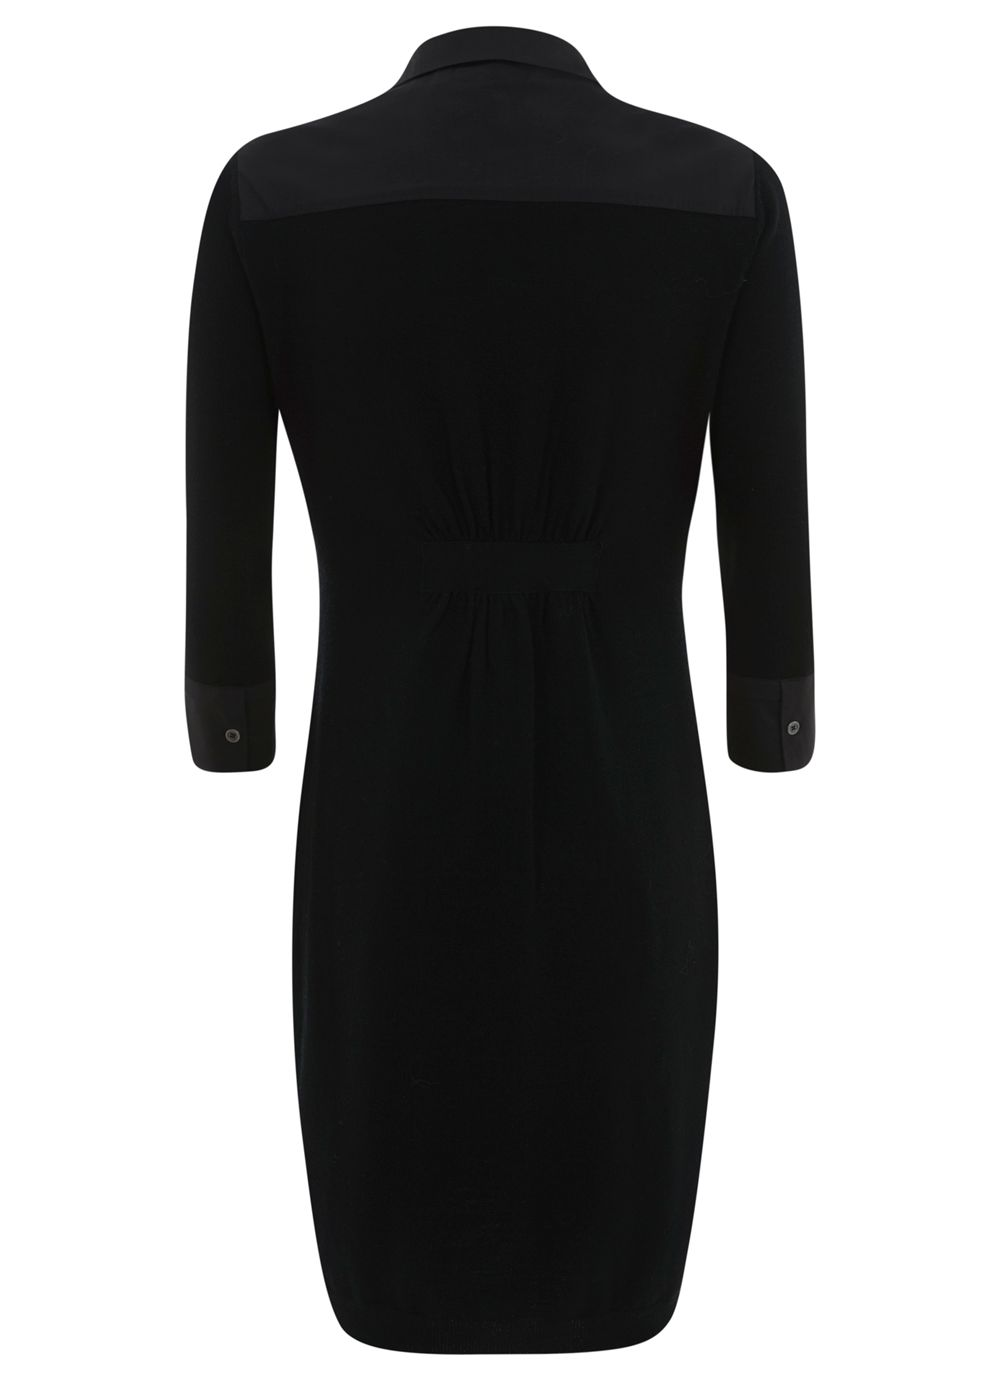 Black Shirt Knit Dress